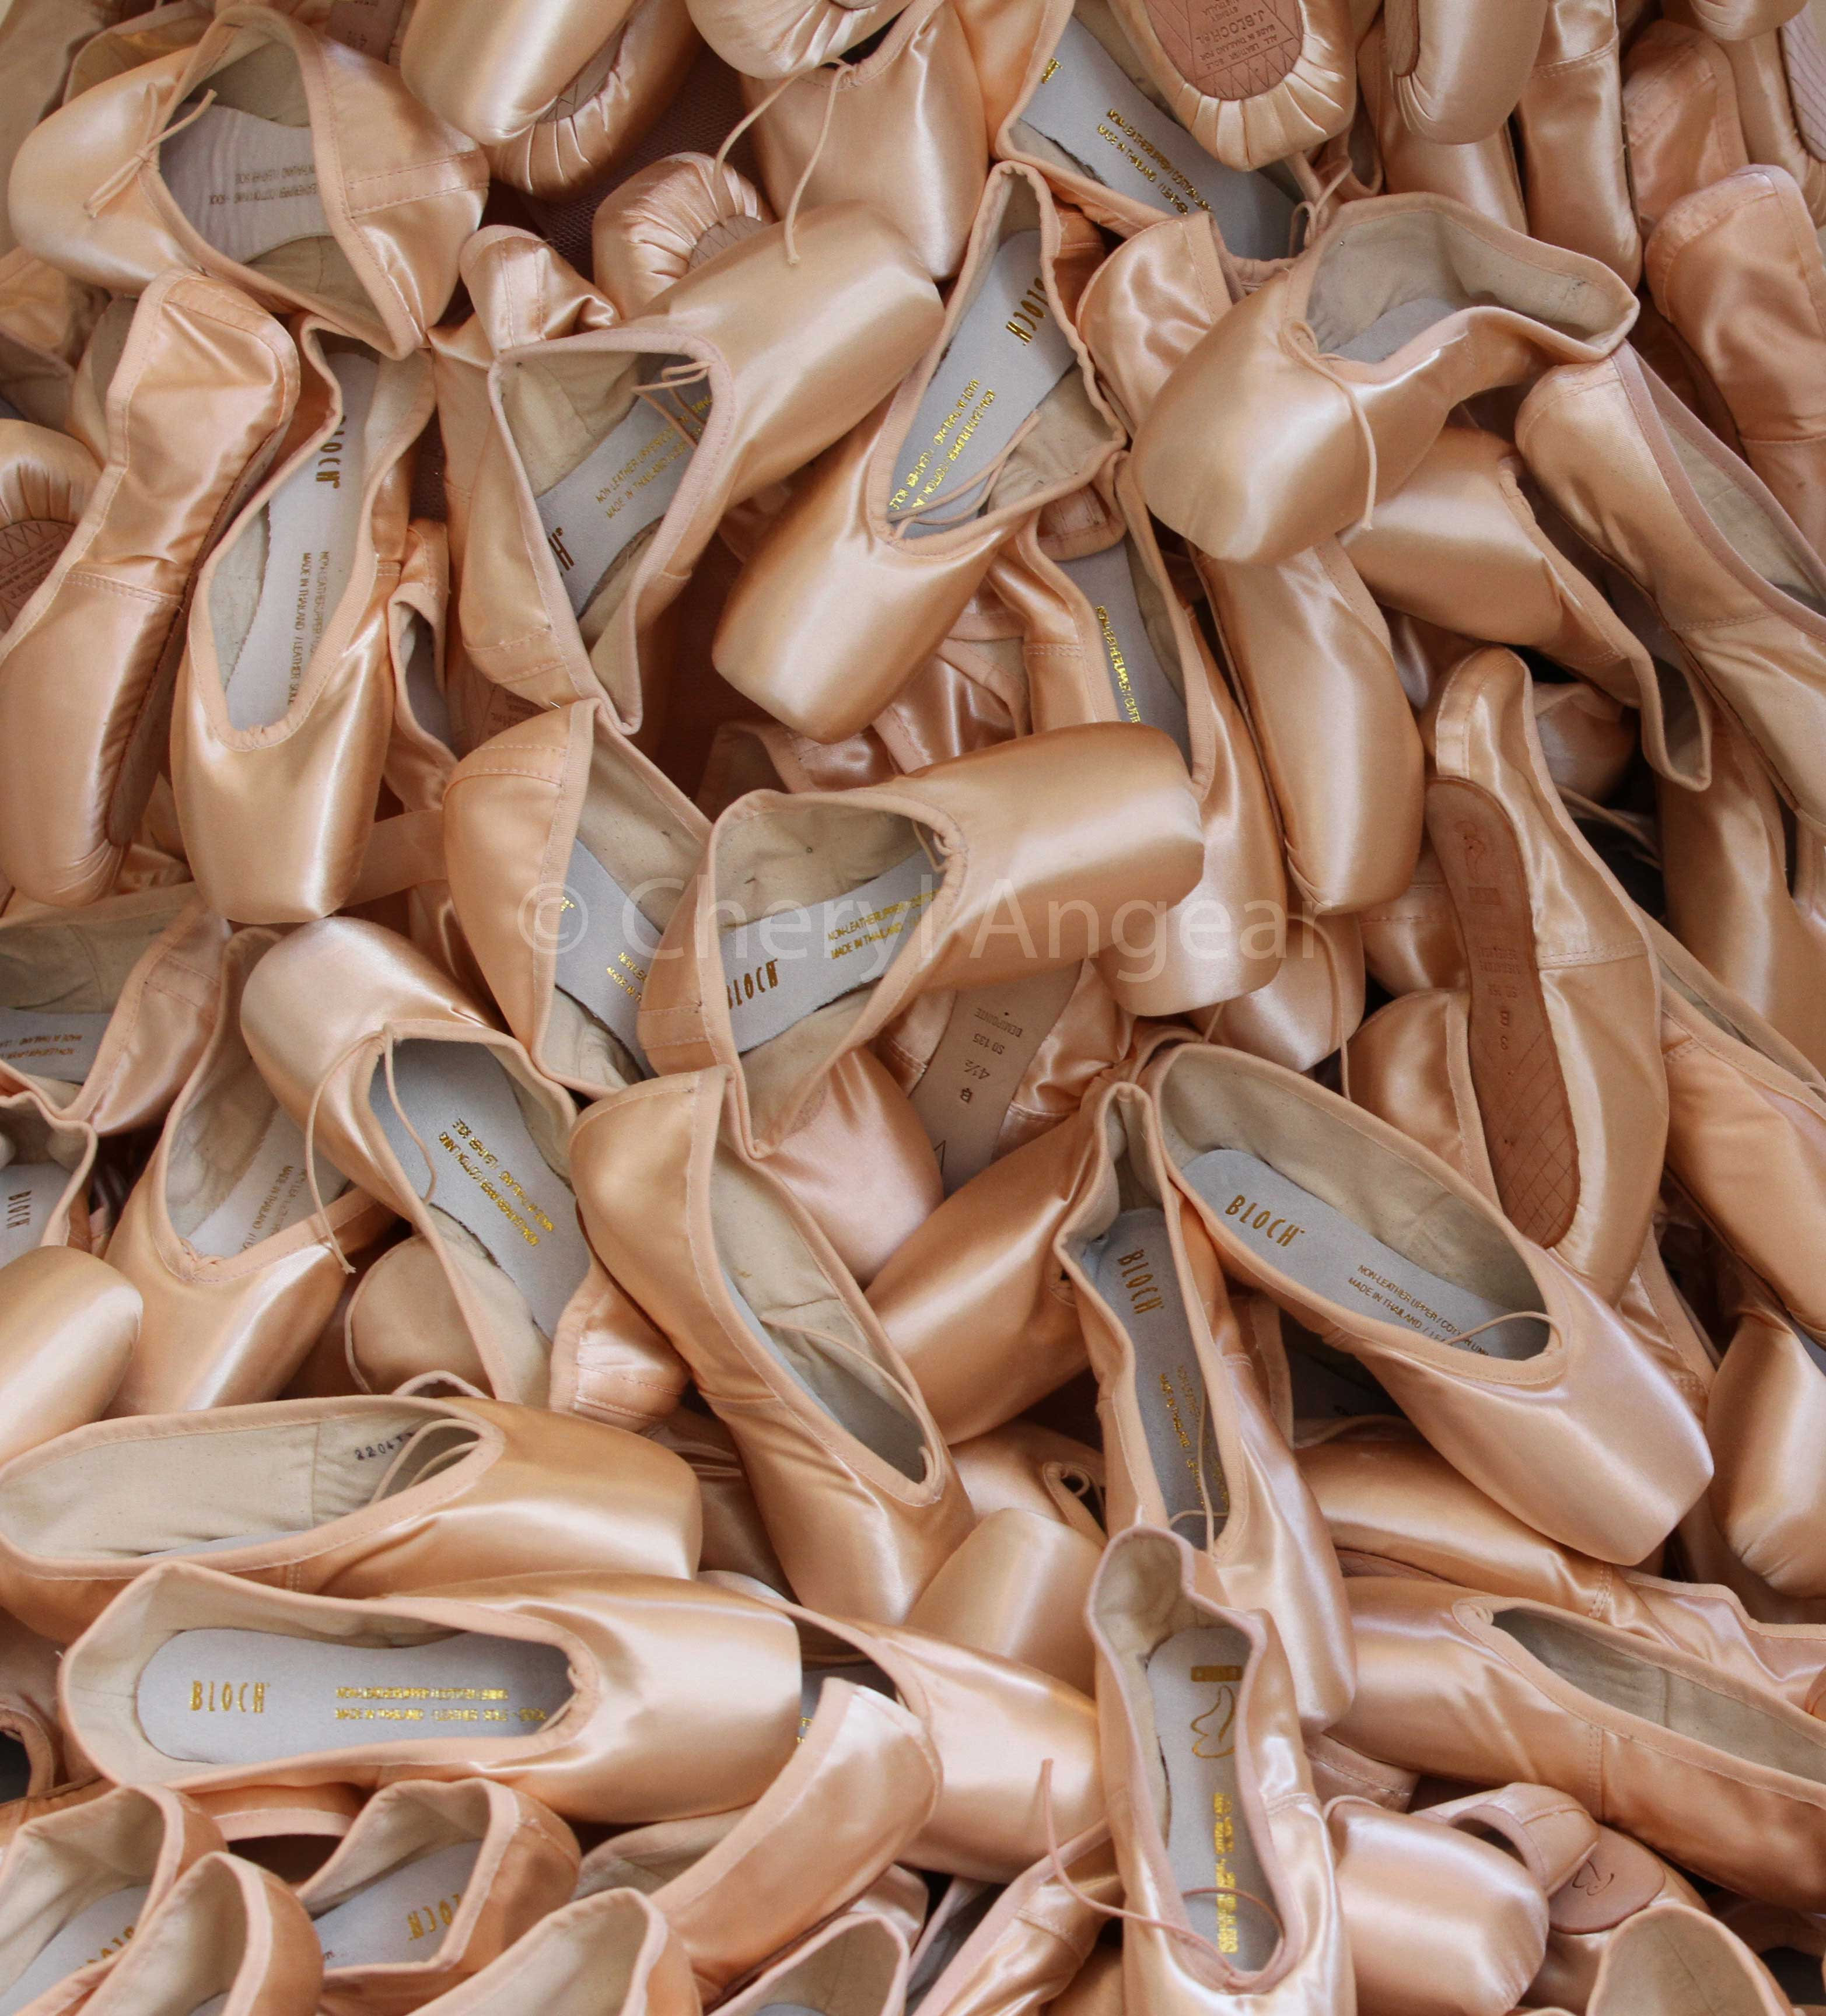 a pile of ballet pointe shoes